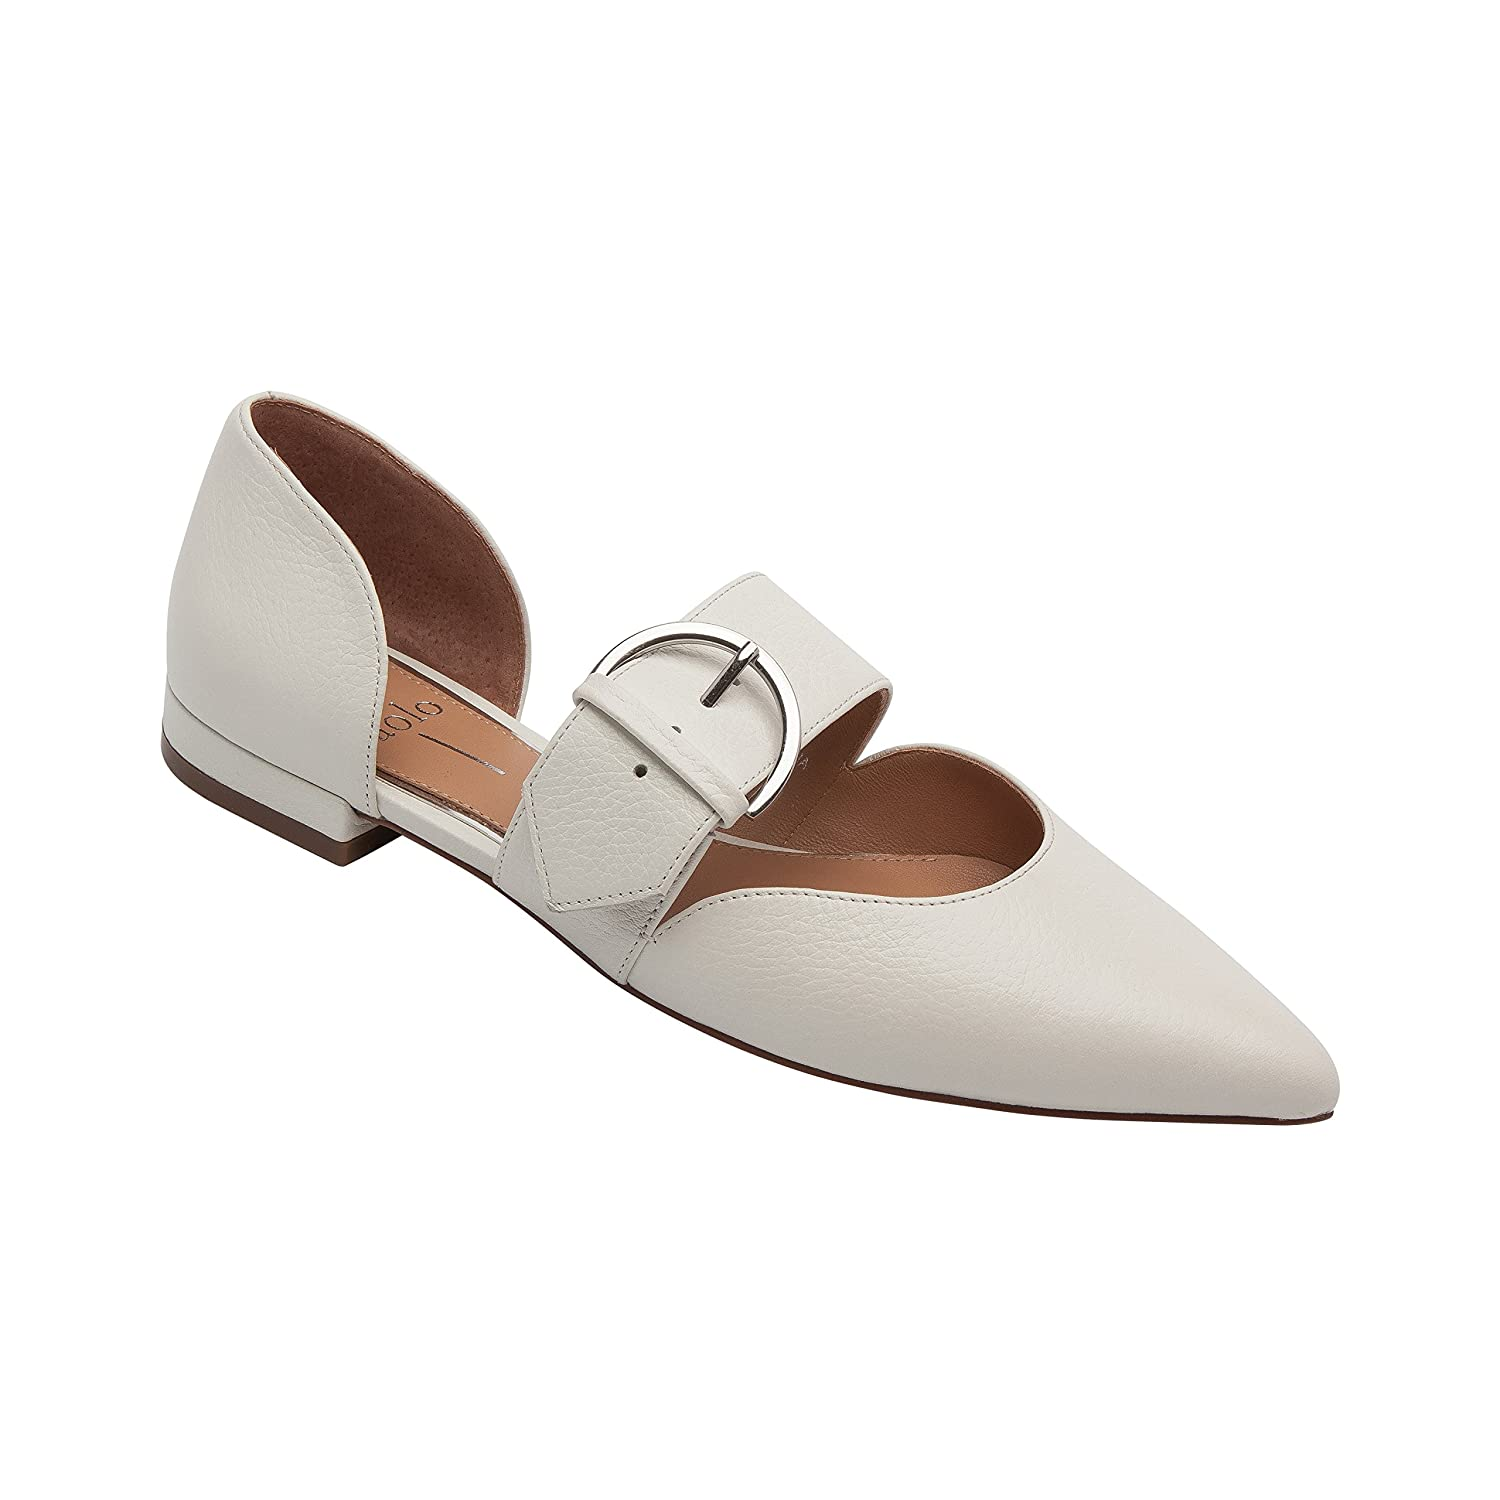 Dean | Women's Two Piece Pointy Toe Comfortable Leather or Suede Ballet Flat B079575PZY 8 M US|Ivory Leather